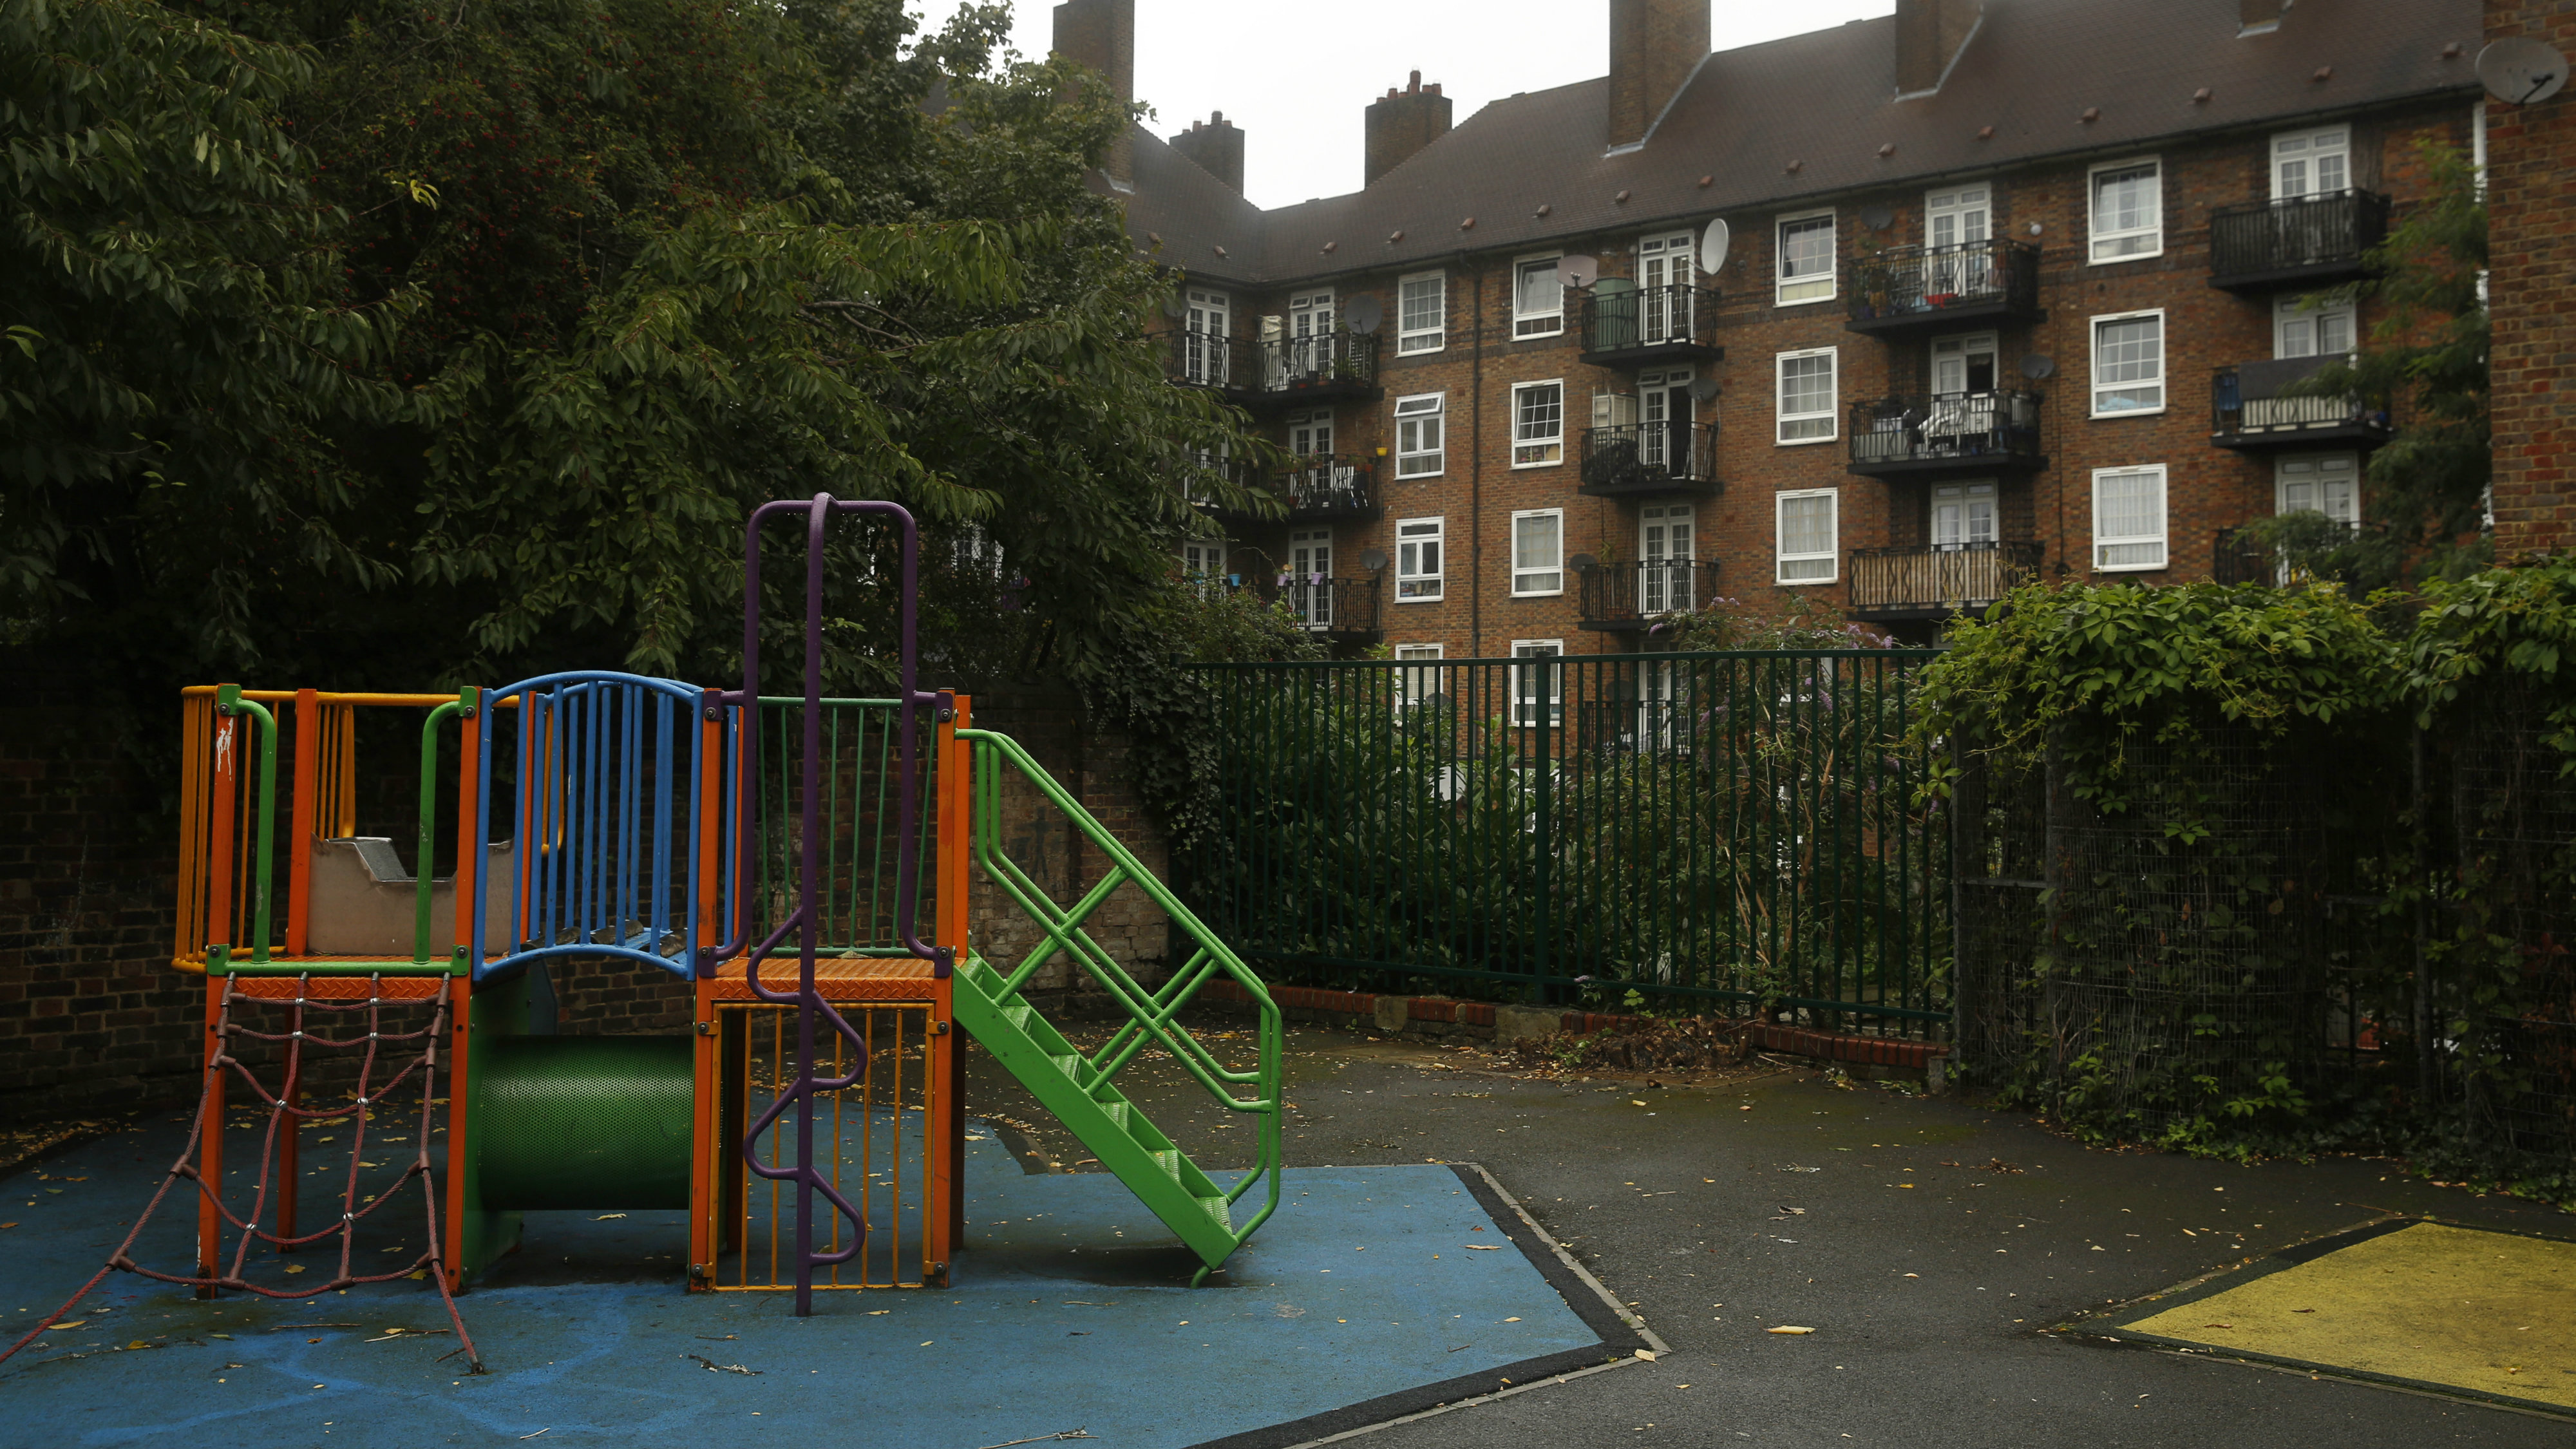 In Britains Playgrounds Bringing In >> A Segregated London Playground Is Igniting Outrage Over